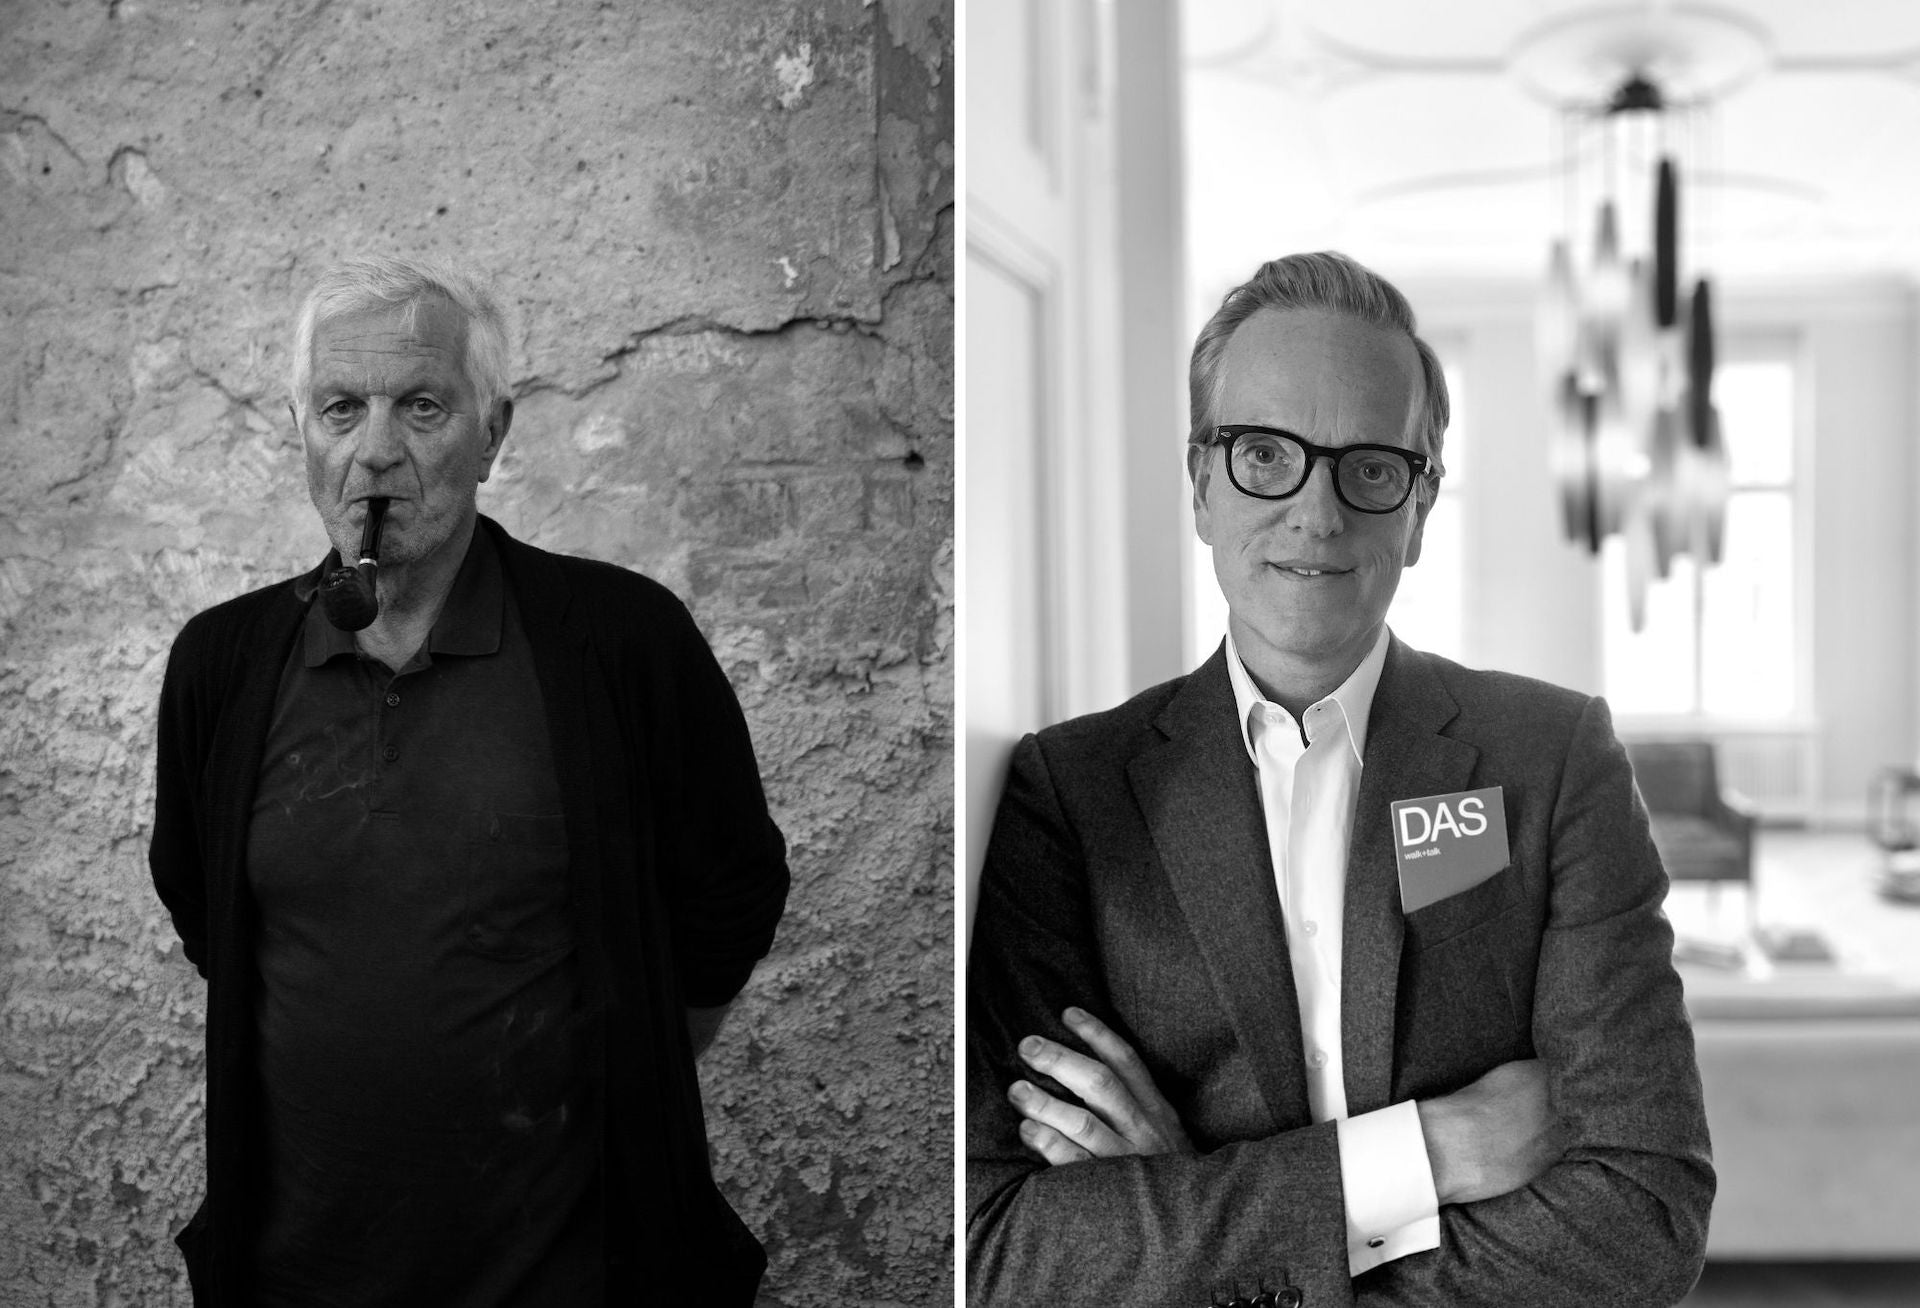 Egidio Marzona and Arne Cornelius Wasmuth. The Marzona Foundation purchased the land for the dieDAS in 2018. Photos © dieDAS